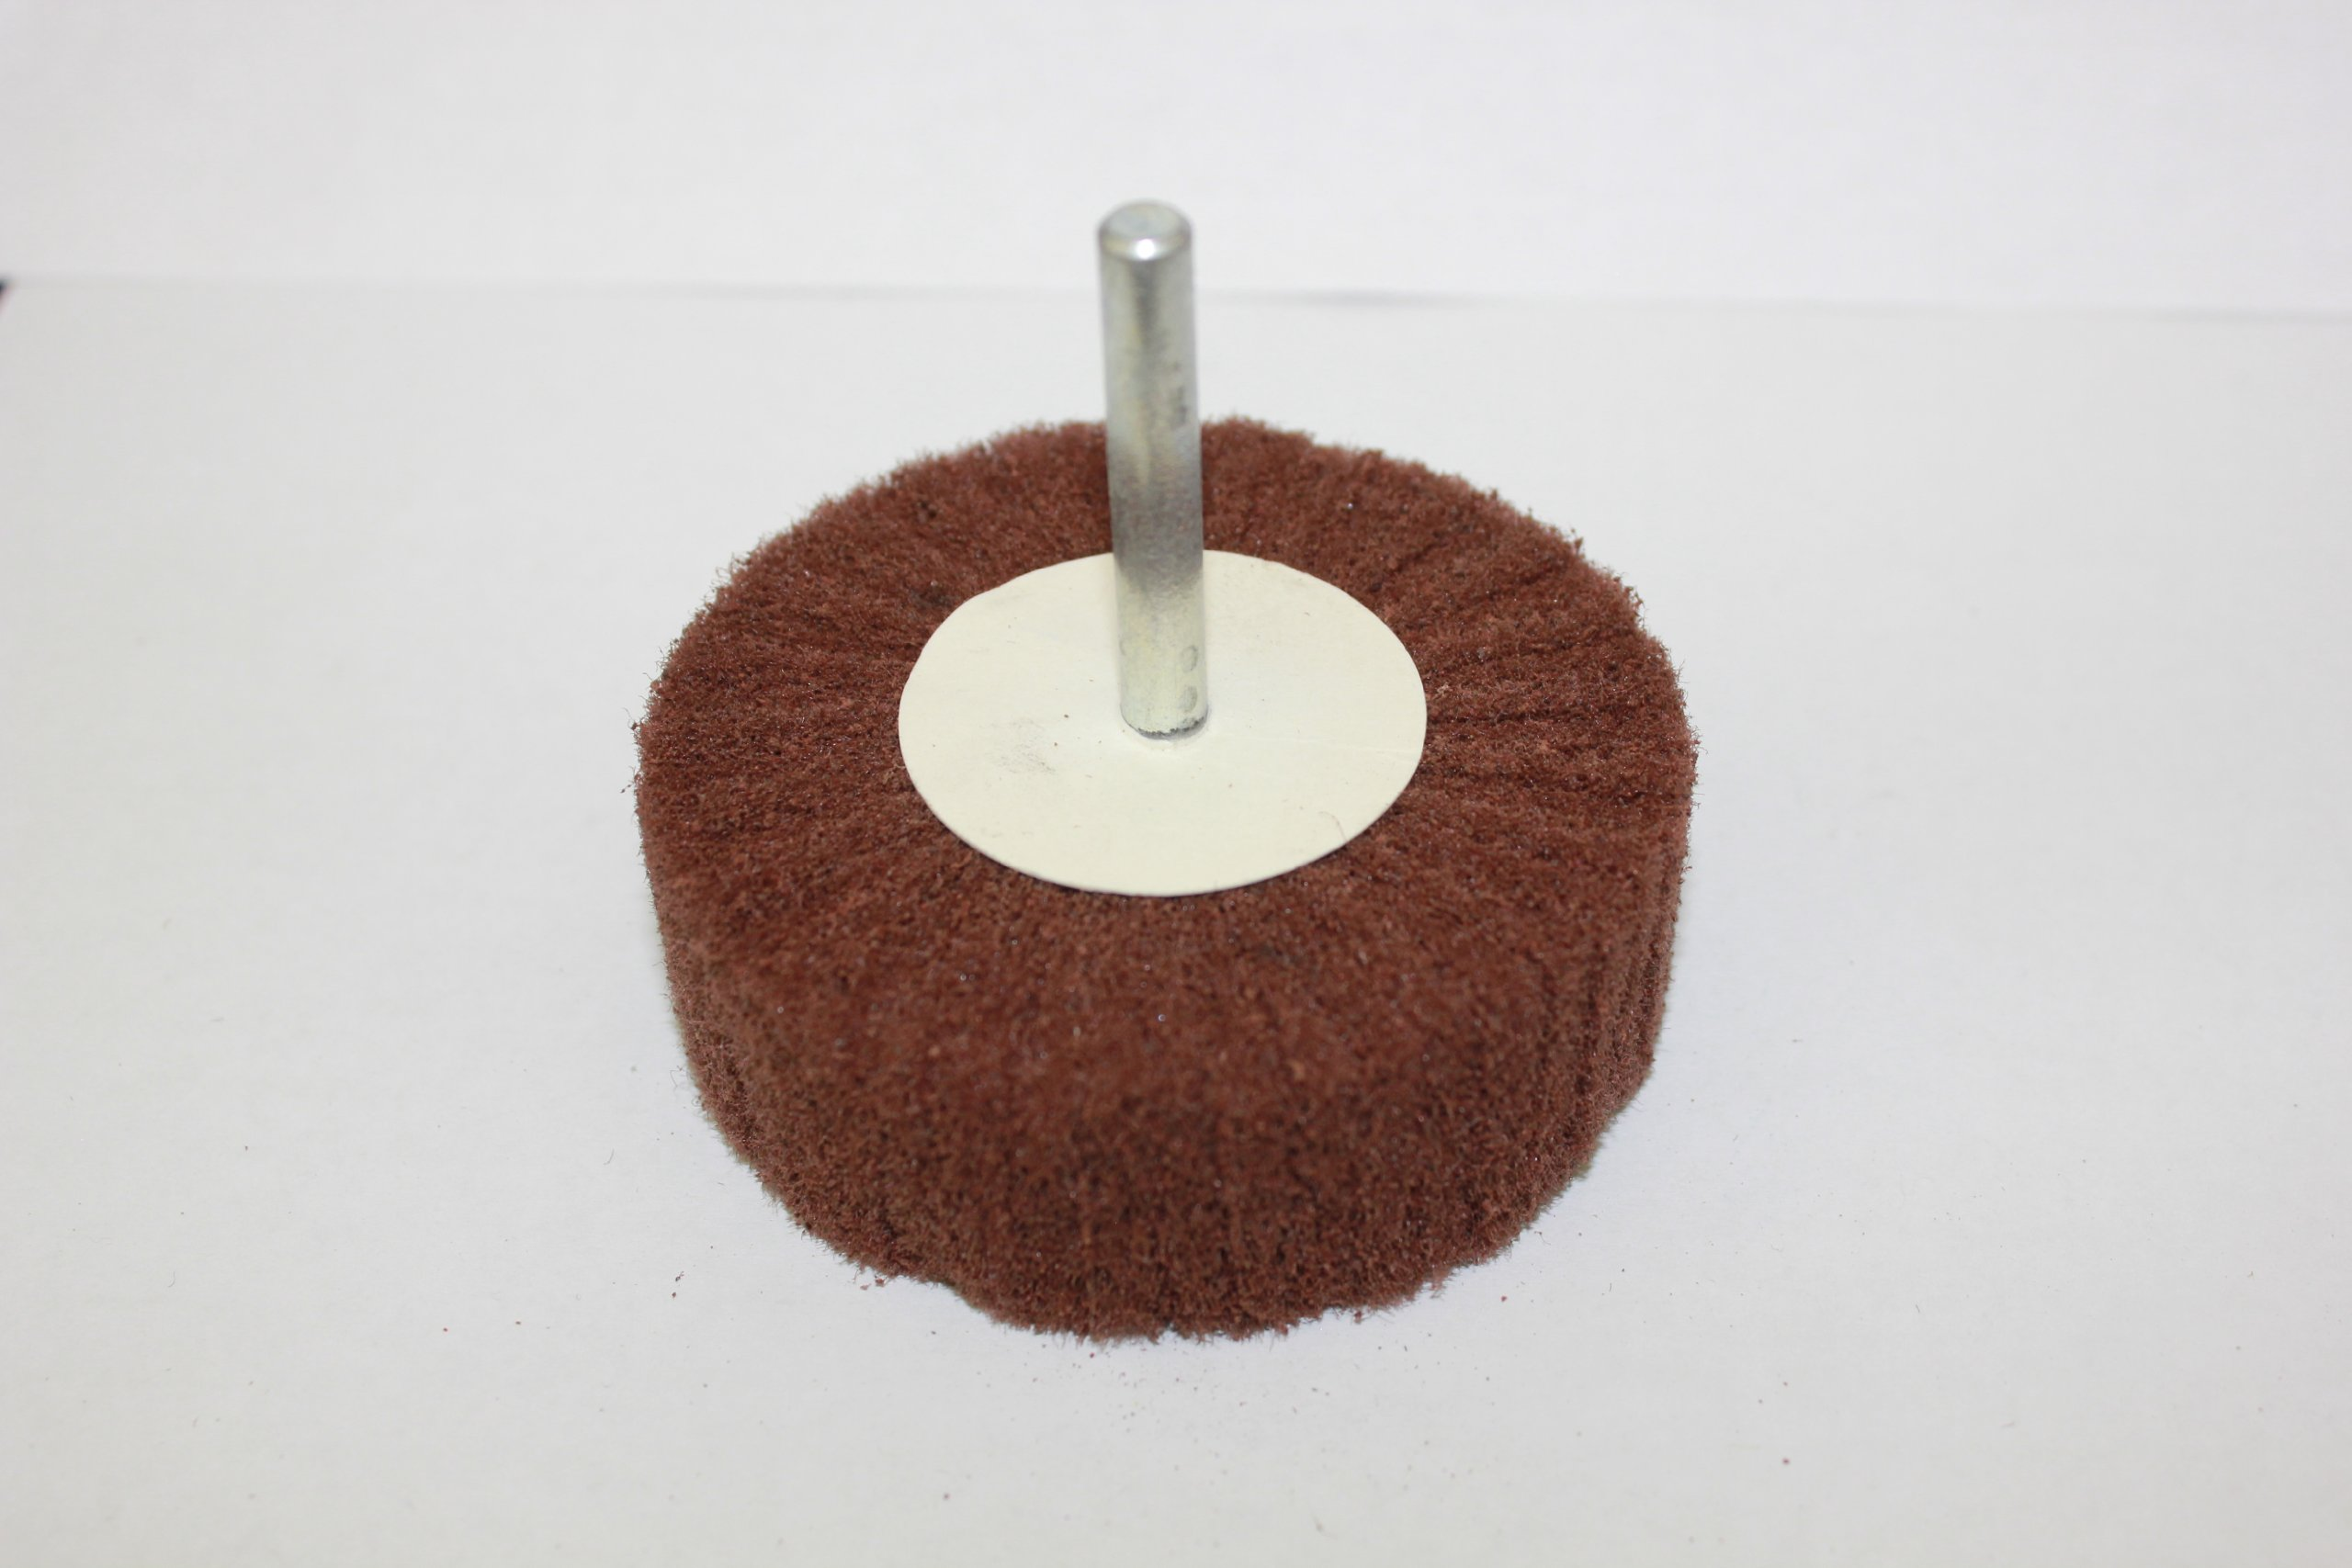 Sundisc 40016 Super Non-Woven Abrasive Flap Wheel, 3'' Diameter x 2'' Width, Very Fine Grit, 8600 RPM (Pack of 10)